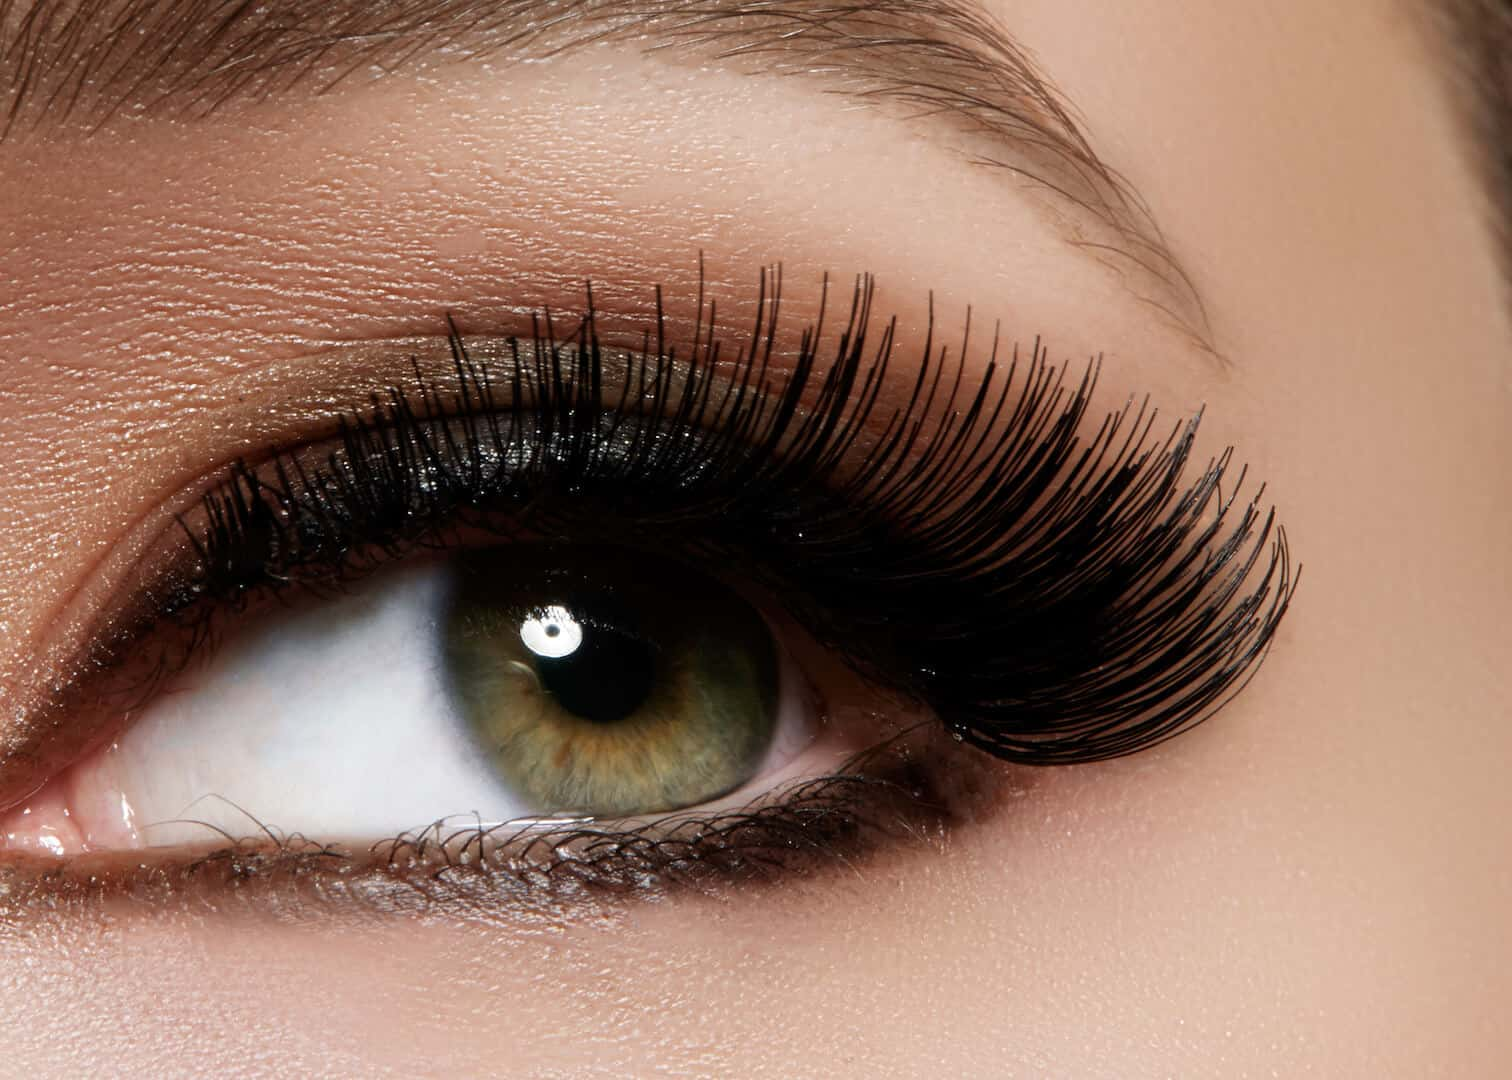 How To Use Castor Oil For Eyelash Growth? – Guide